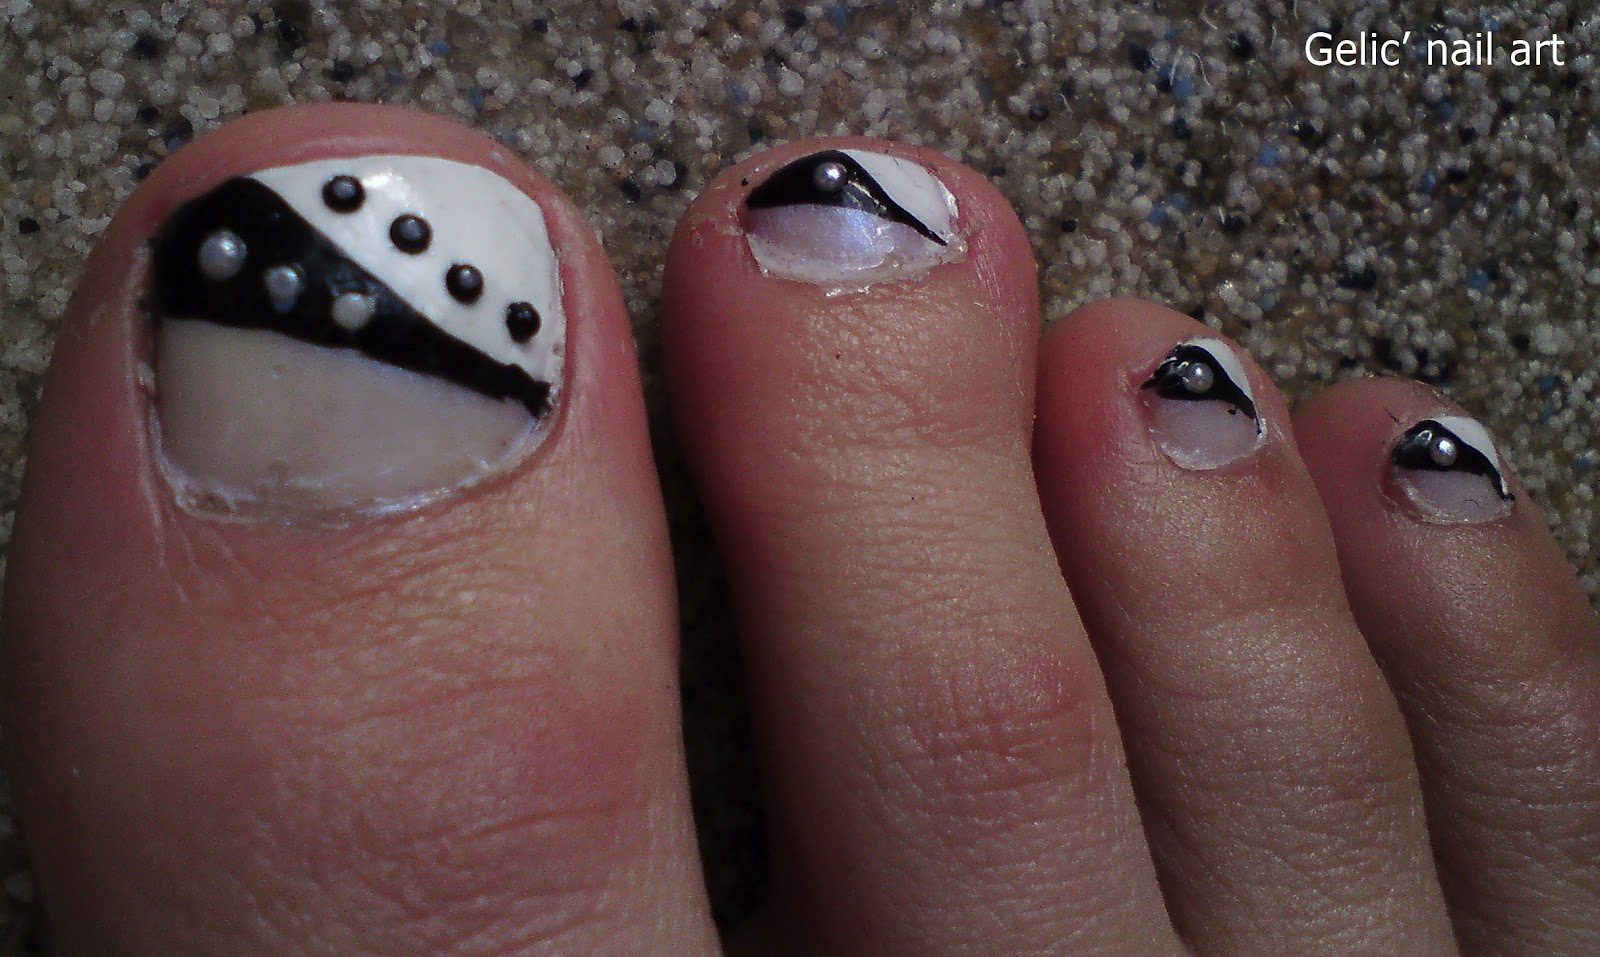 Gelic Nail Art Black And White Pedicure Nail Art With Pearl Rhinestones